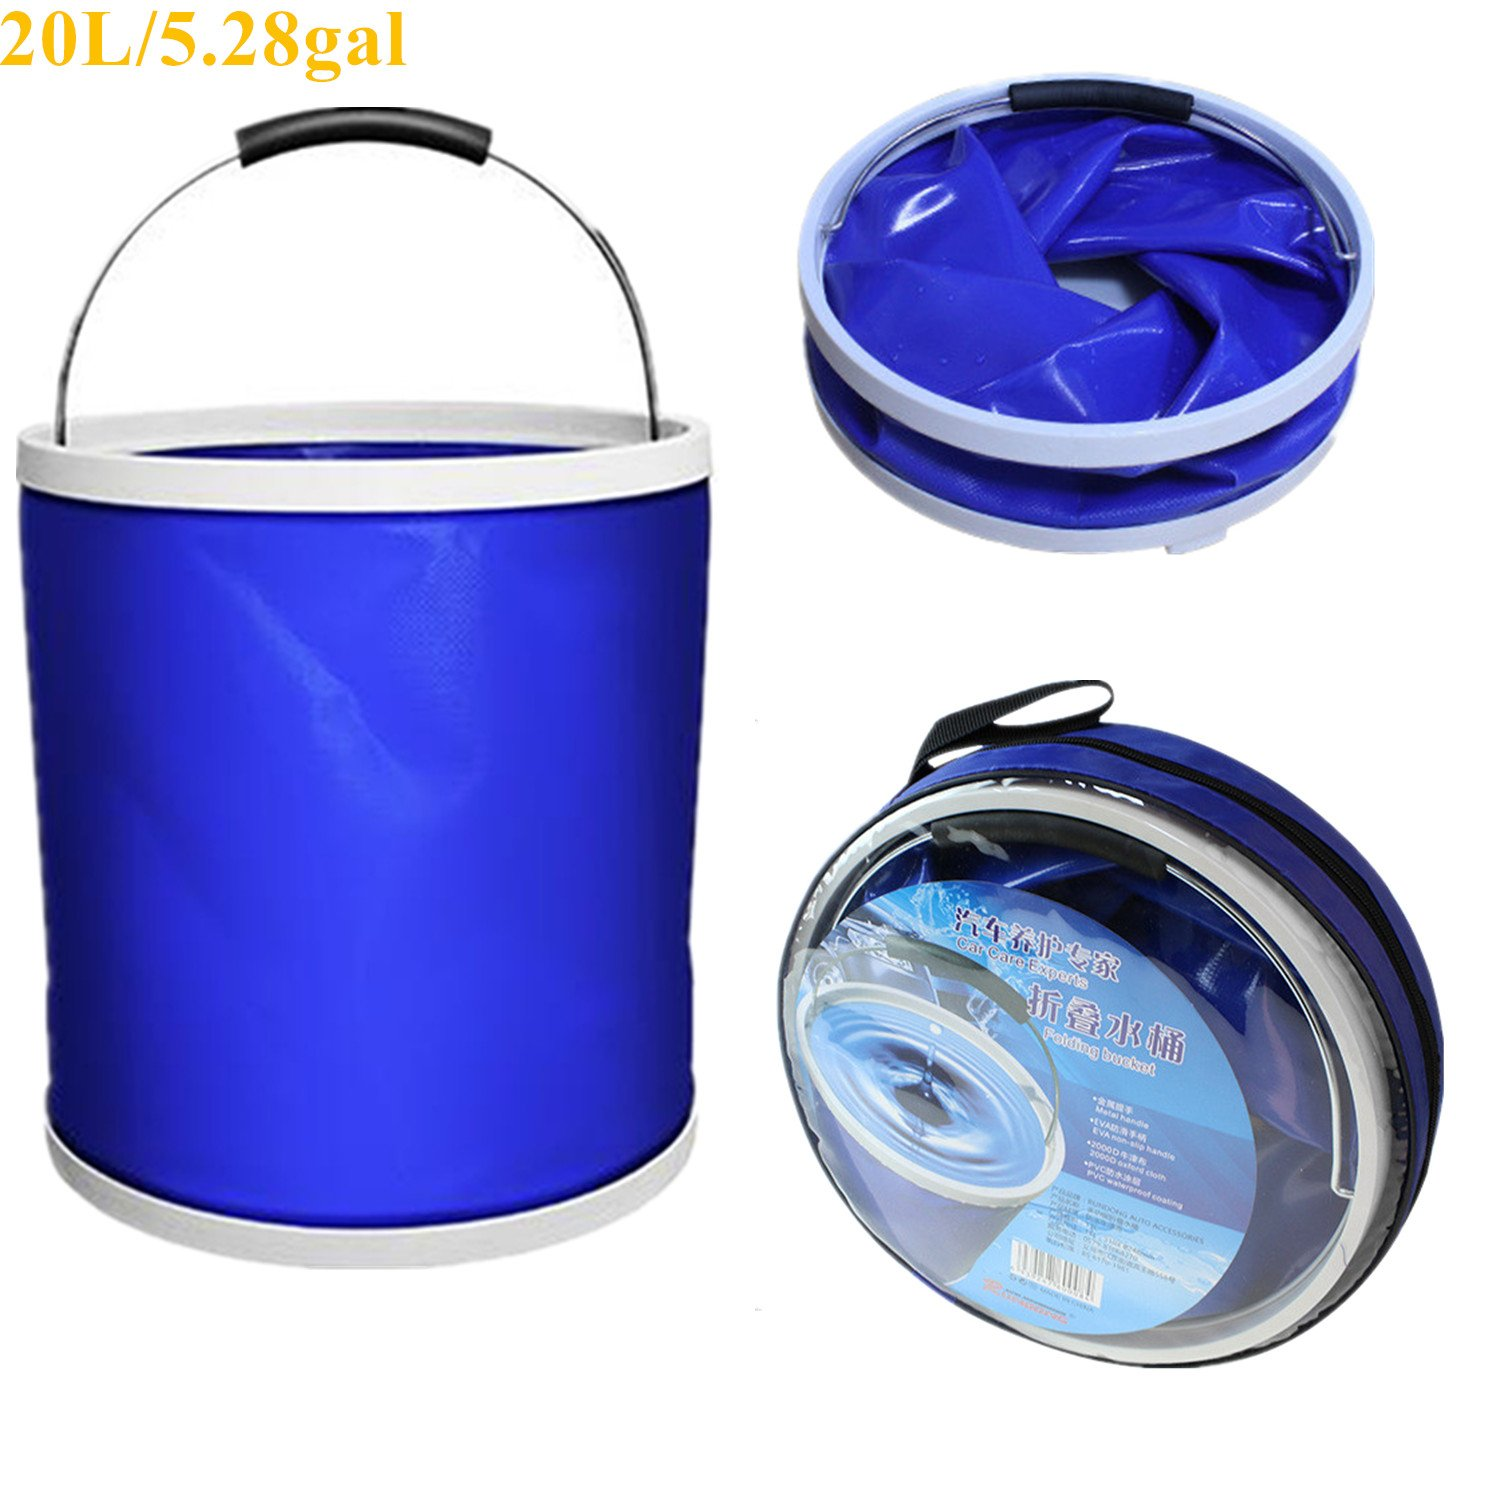 Camping Collapsible Bucket - Folding Multifuctional Water Container| Lightweight Portable Large Bucket| Car Cleaning Wash Bucket Pail| For Outdoor Camping, Hiking, Fishing, Washing & Gardening